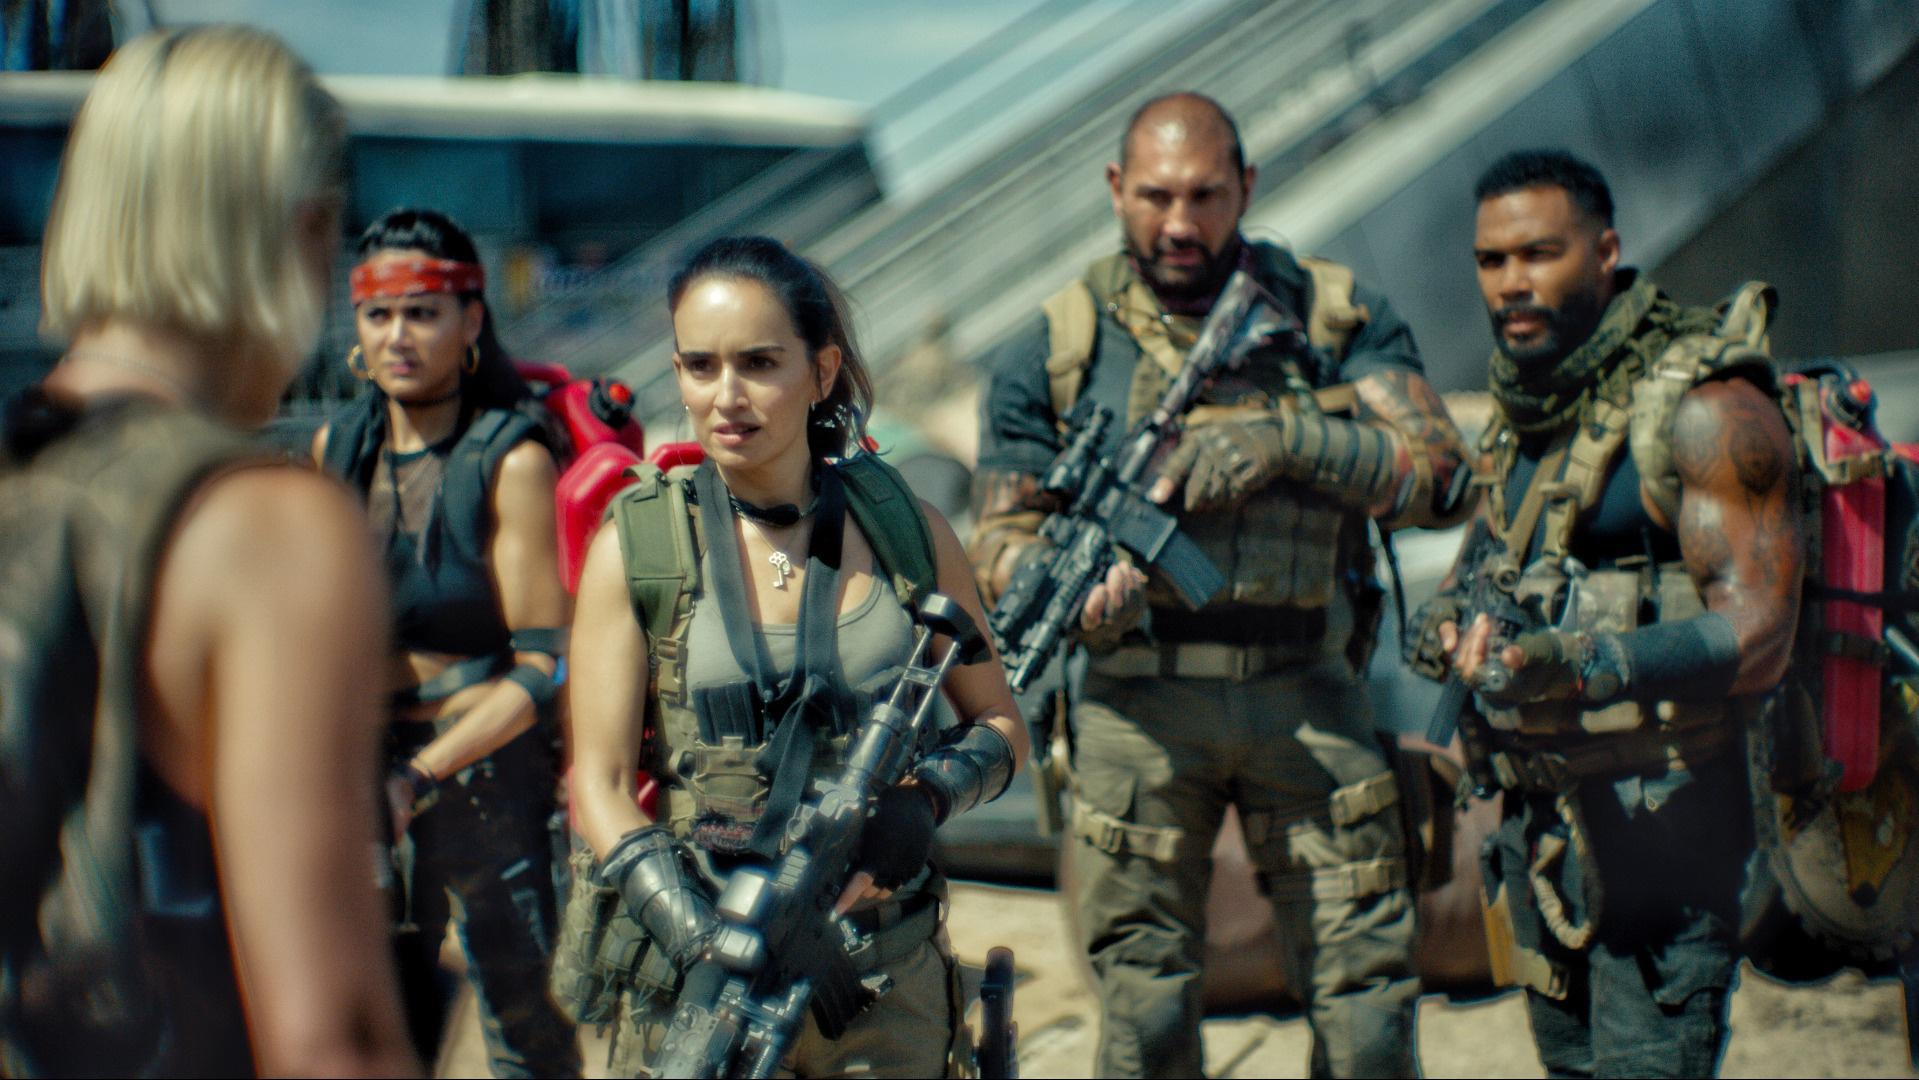 ARMY OF THE DEAD - (L-R) NORA ARNEZEDER as LILLY, SAMANTHA WIN as CHAMBERS, ANA DE LA REGUERA as CRUZ, DAVE BAUTISTA as SCOTT WARD and OMARI HARDWICK as VANDEROHE.